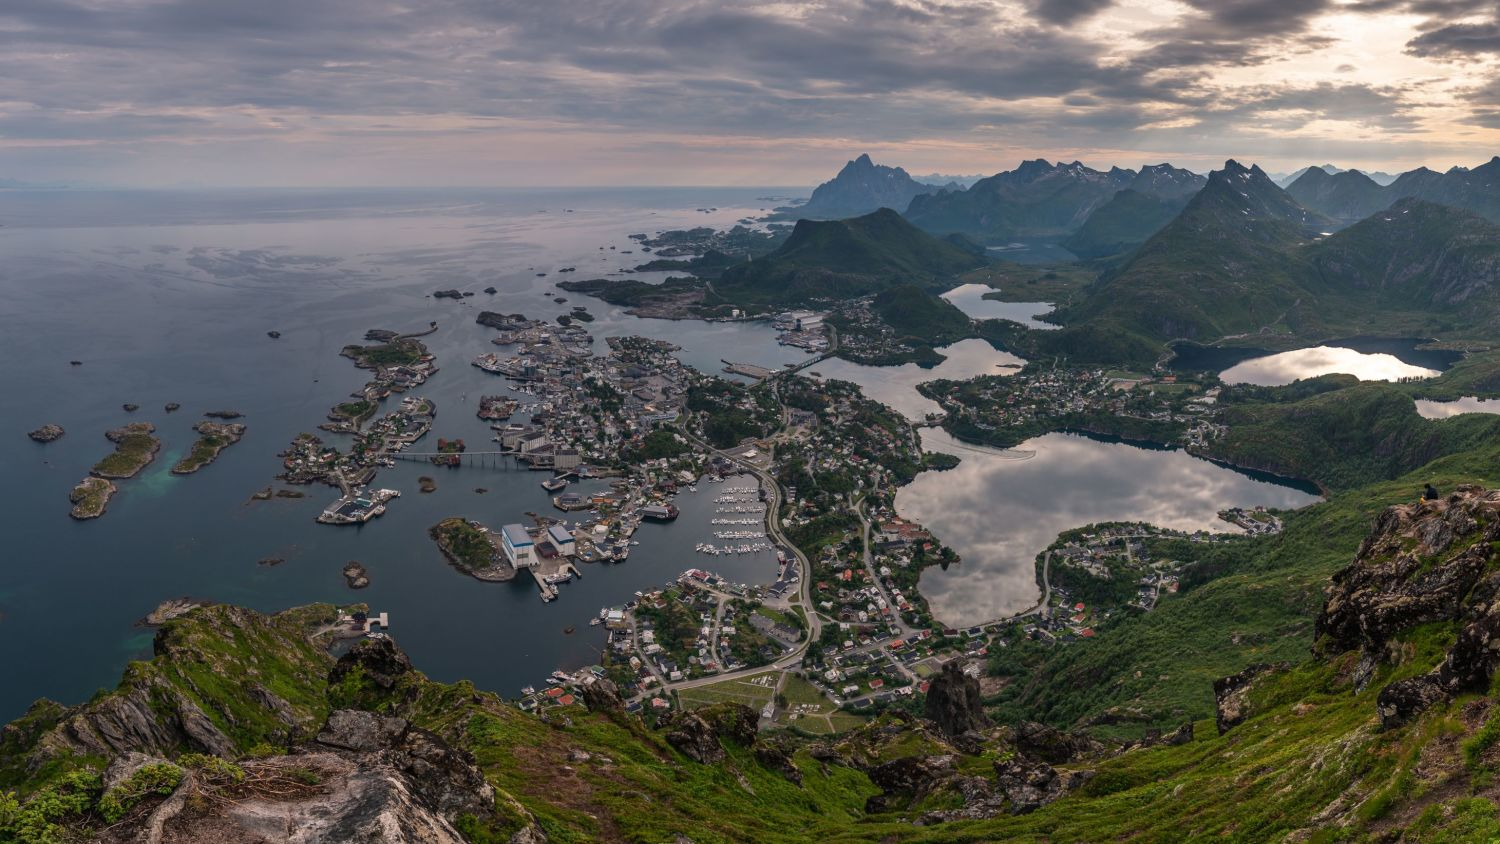 Svolvær in the Lofoten Islands seen from the mountain Floya.